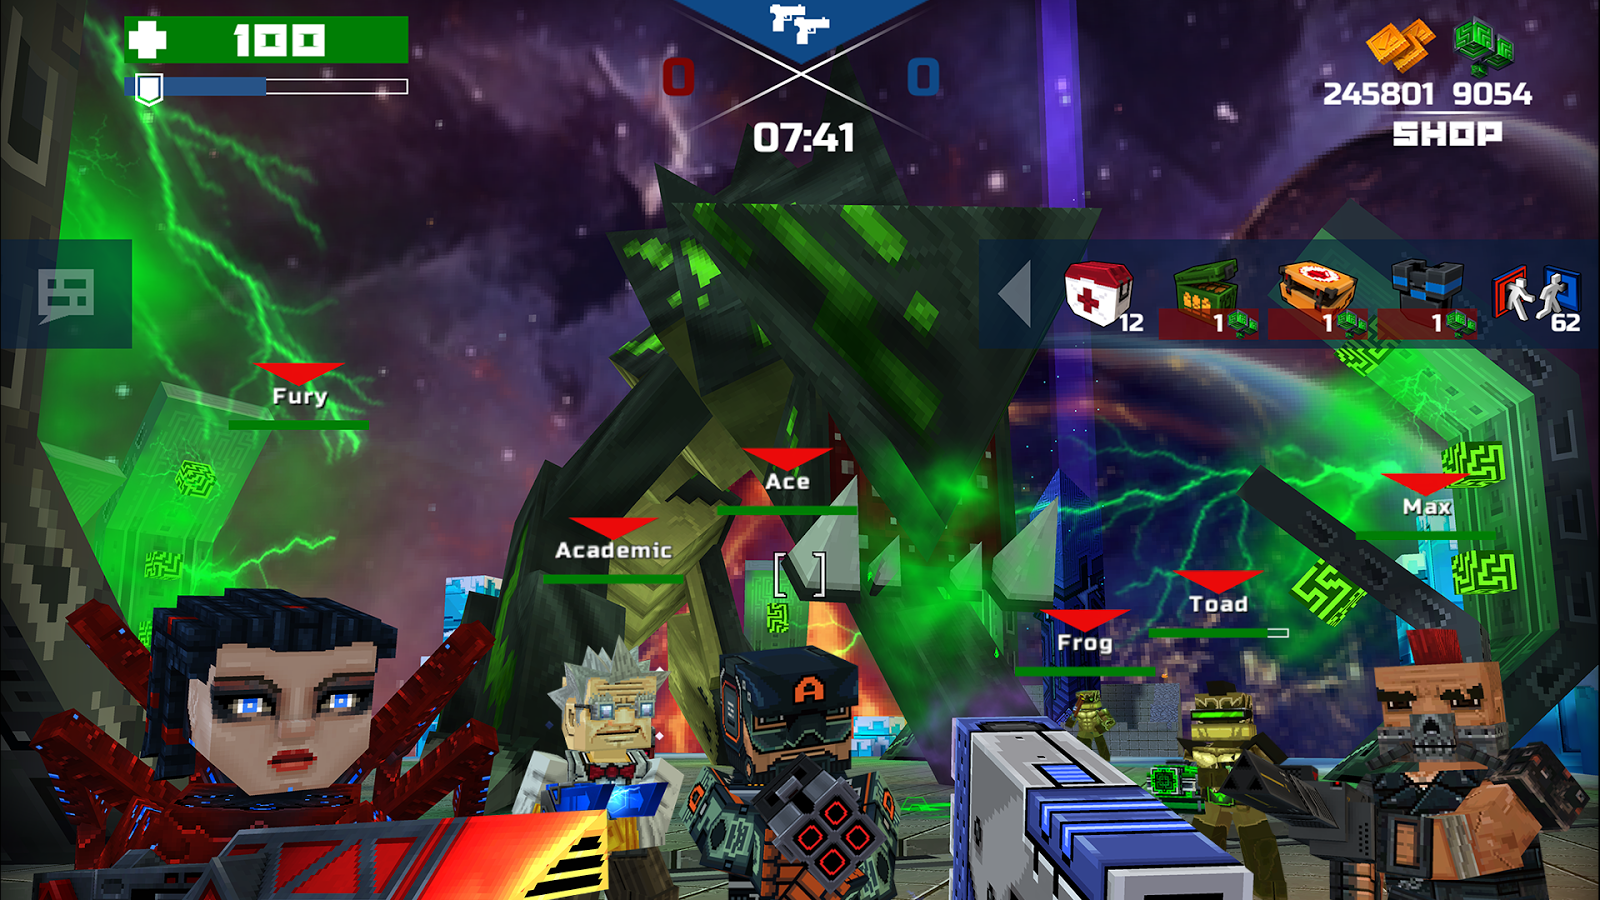 Pixelfield - Best FPS MOBA Strategy Game Screenshot 3